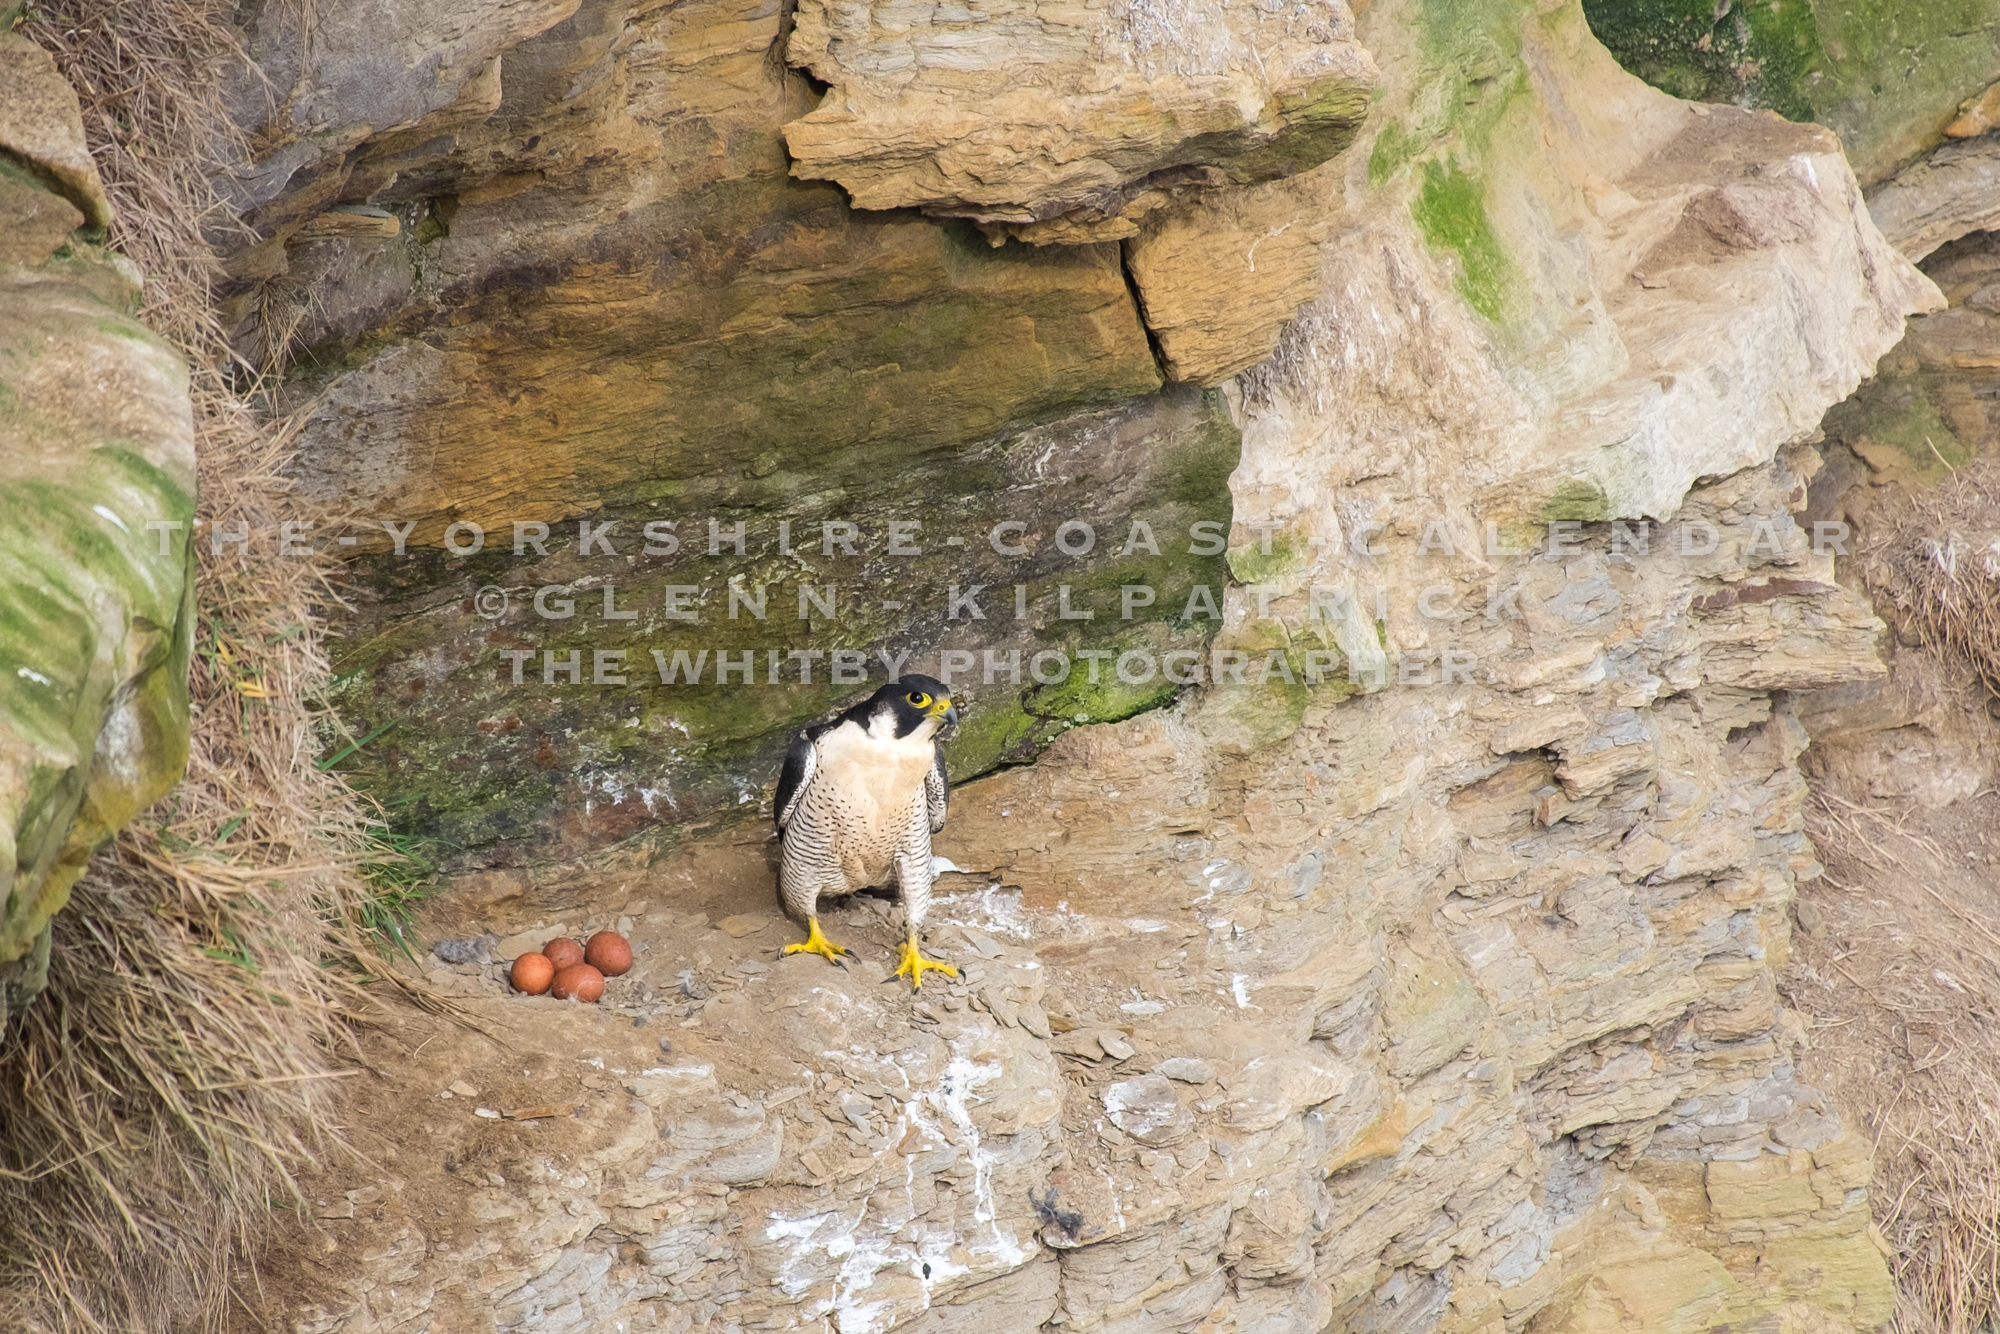 The Worlds Fastest Animal. The Peregrine Falcon Guards Her Nest On The Cleveland Way - The Yorkshire Coast Calendar 2018 By Glenn Kilpatrick.